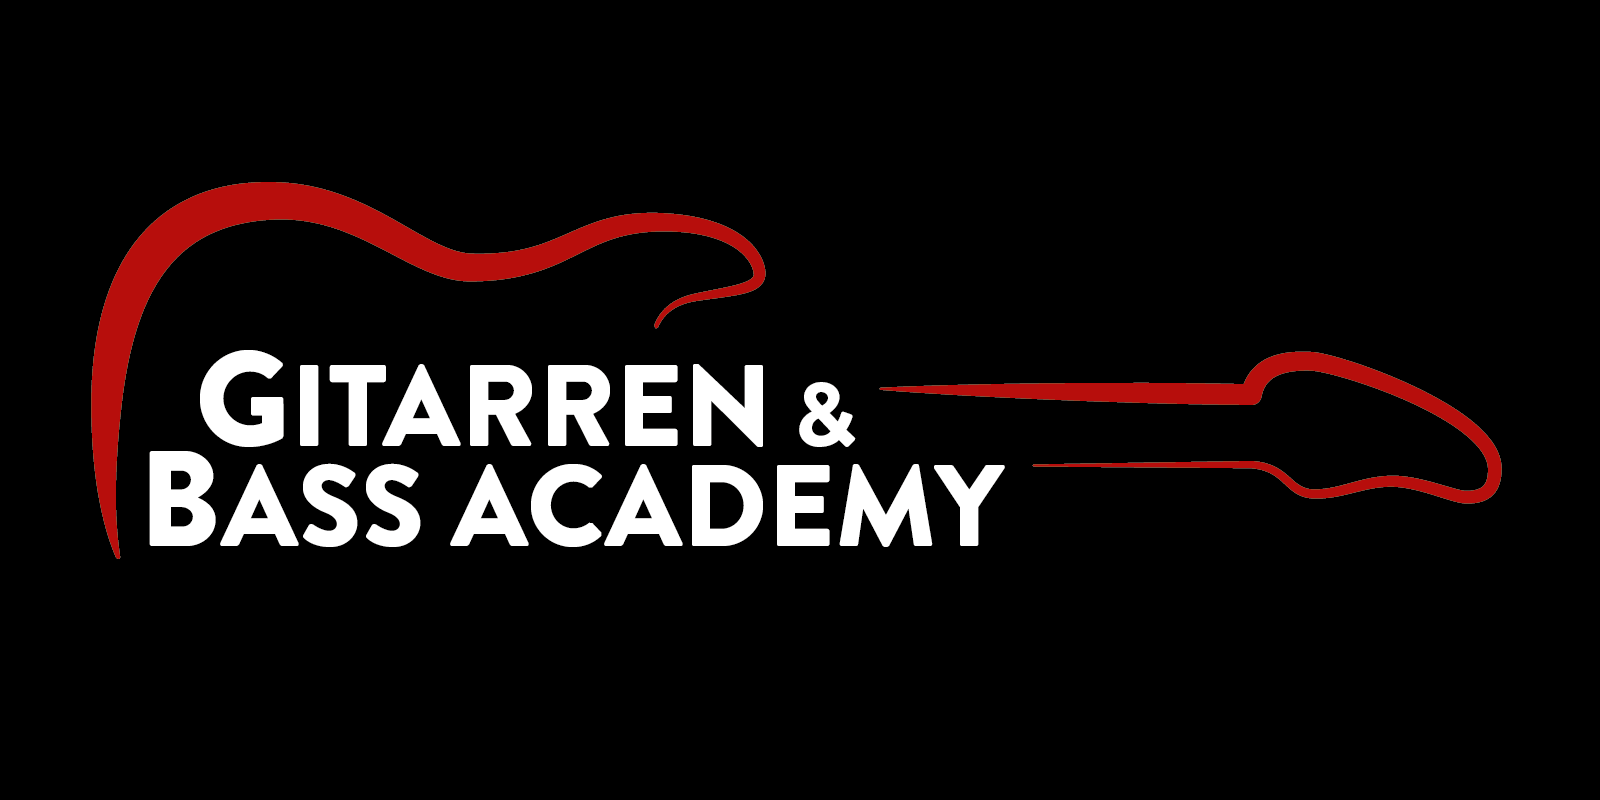 Guitar & Bass Academy